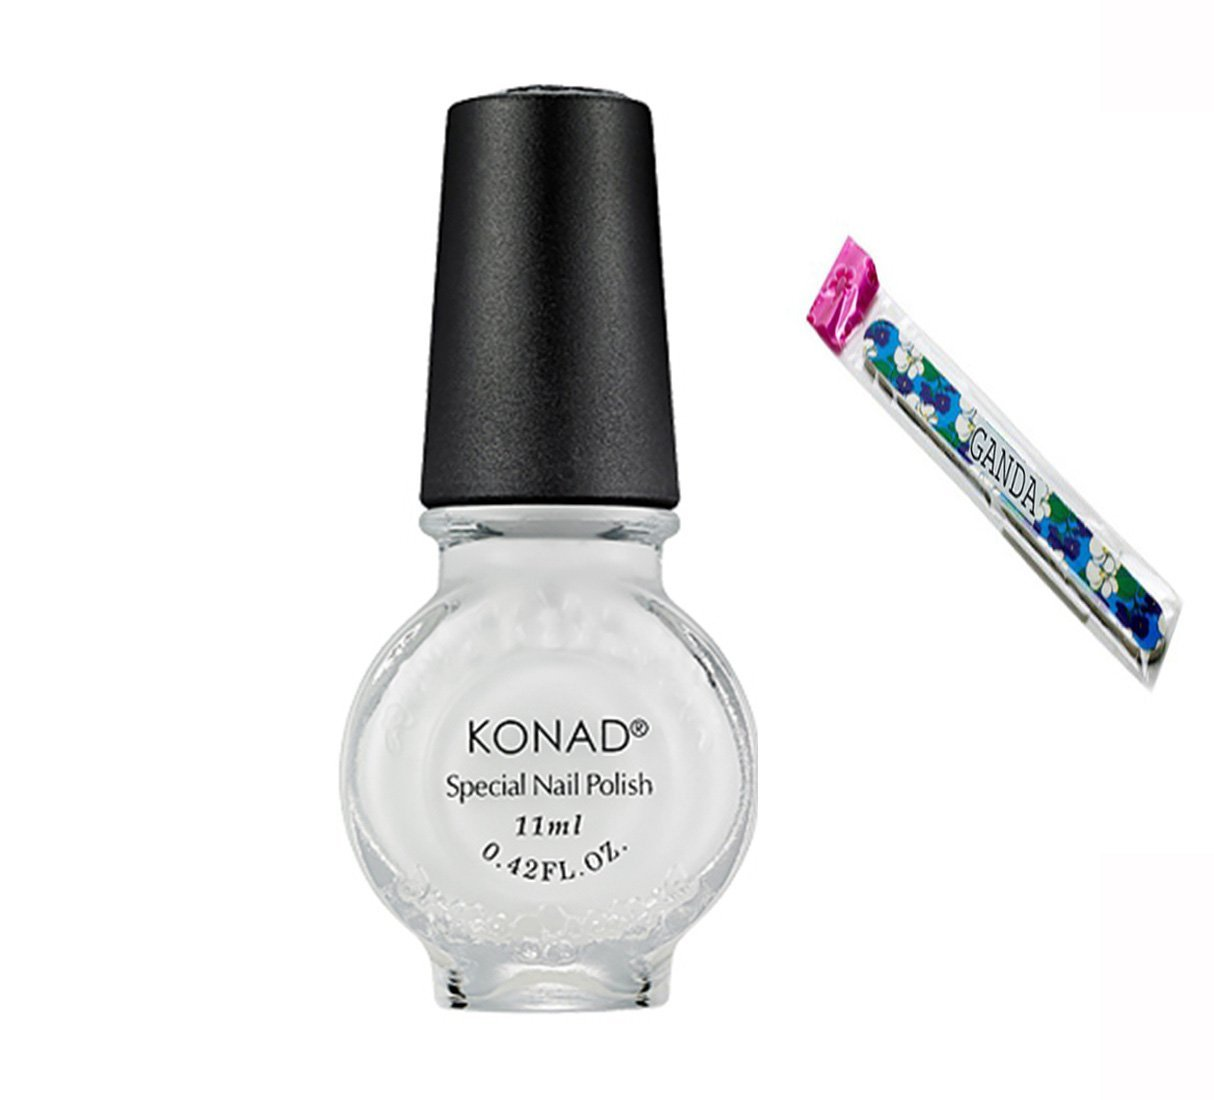 Cheap Konad Nail Art Find Konad Nail Art Deals On Line At Alibaba